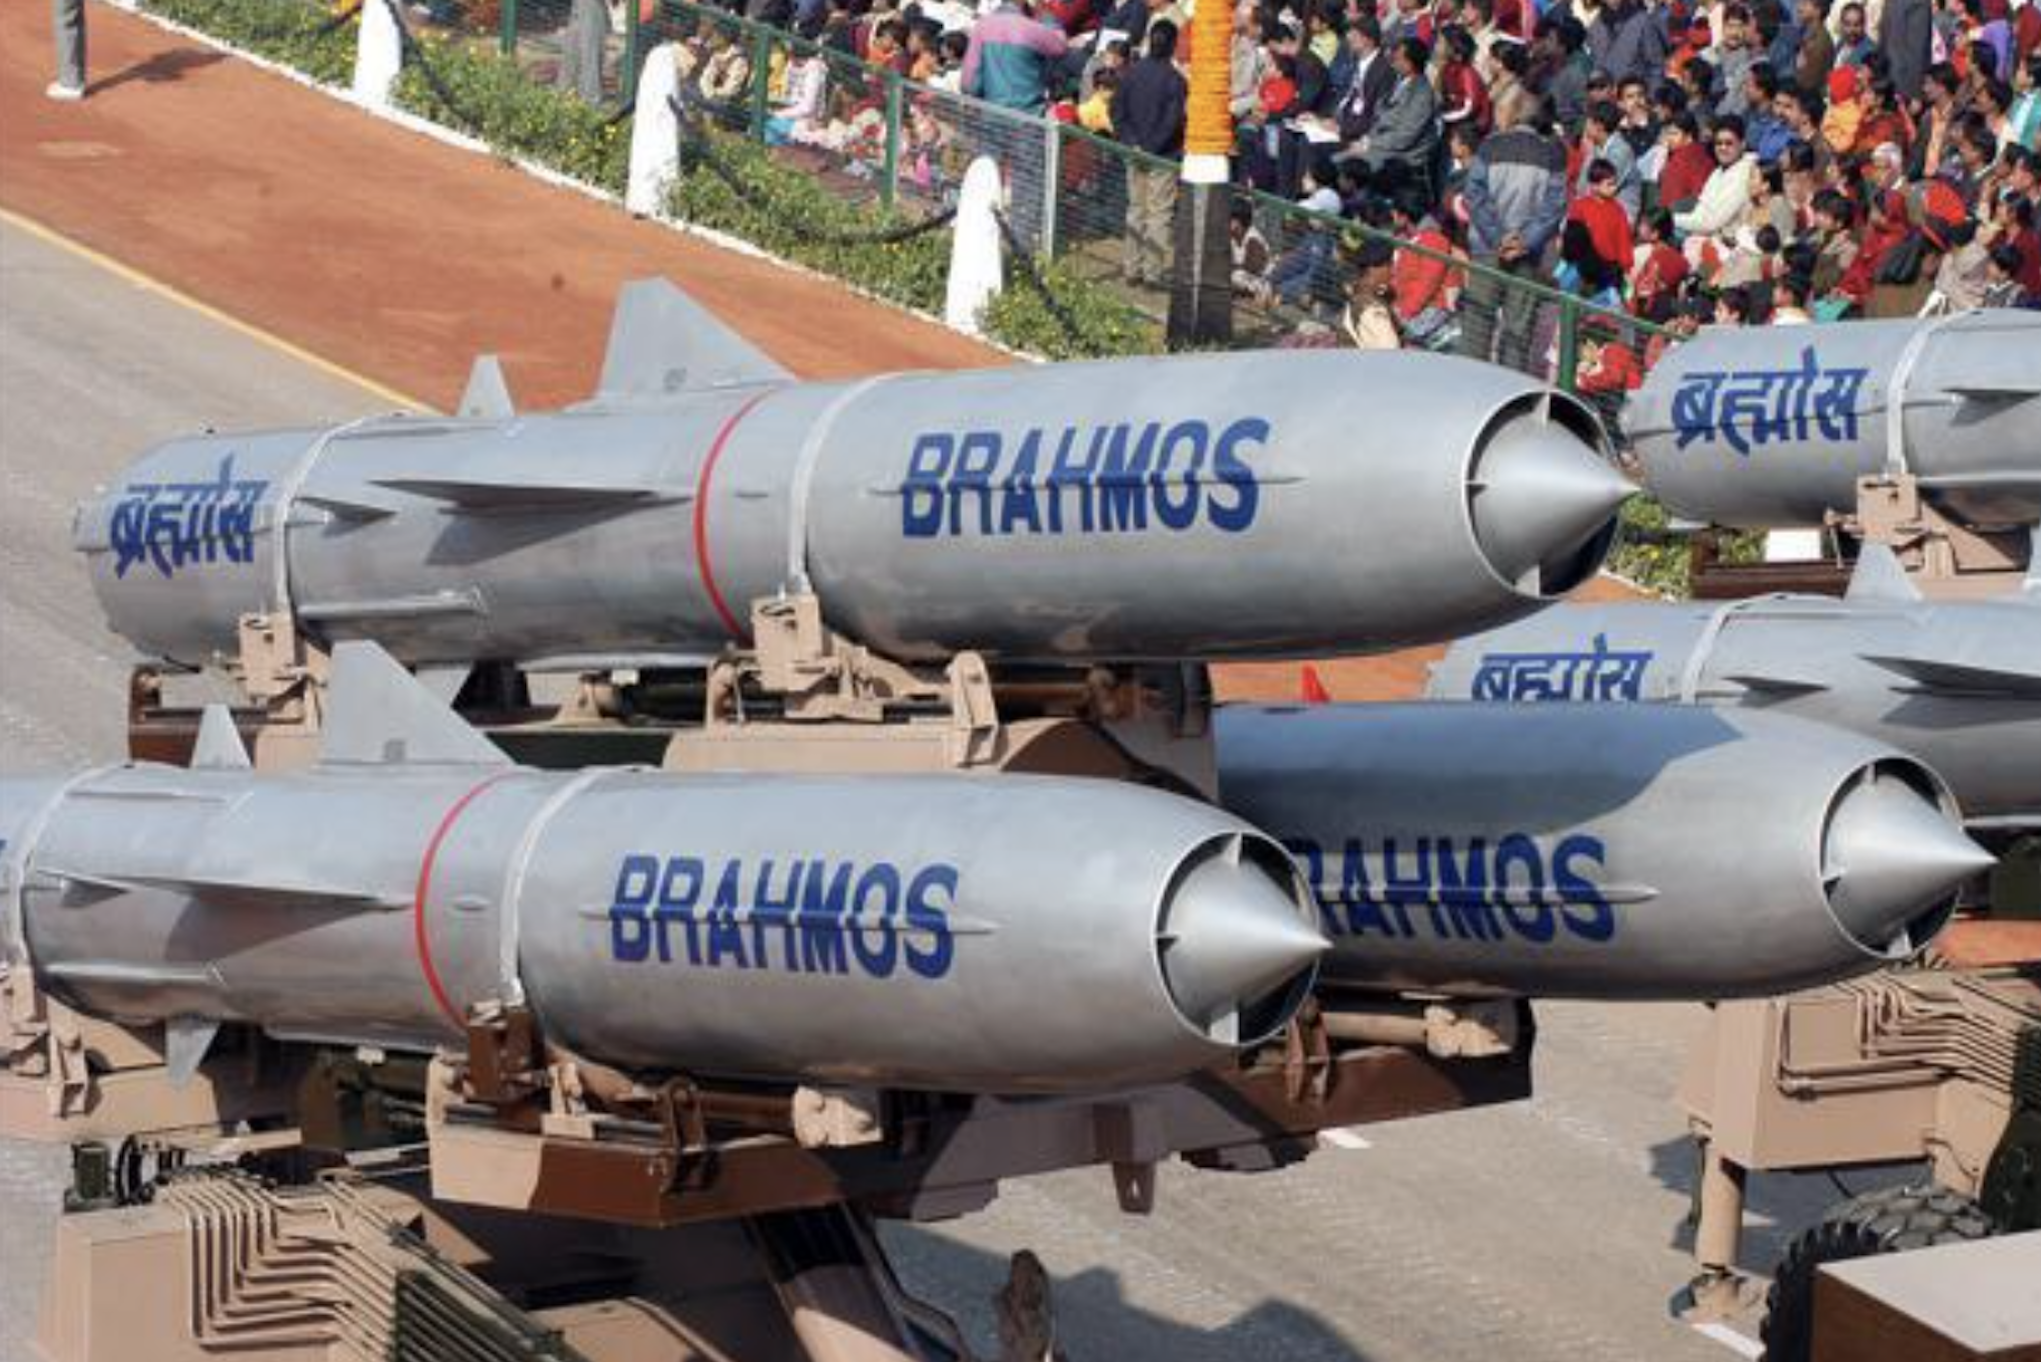 BrahMos missile would give Manila instant clout